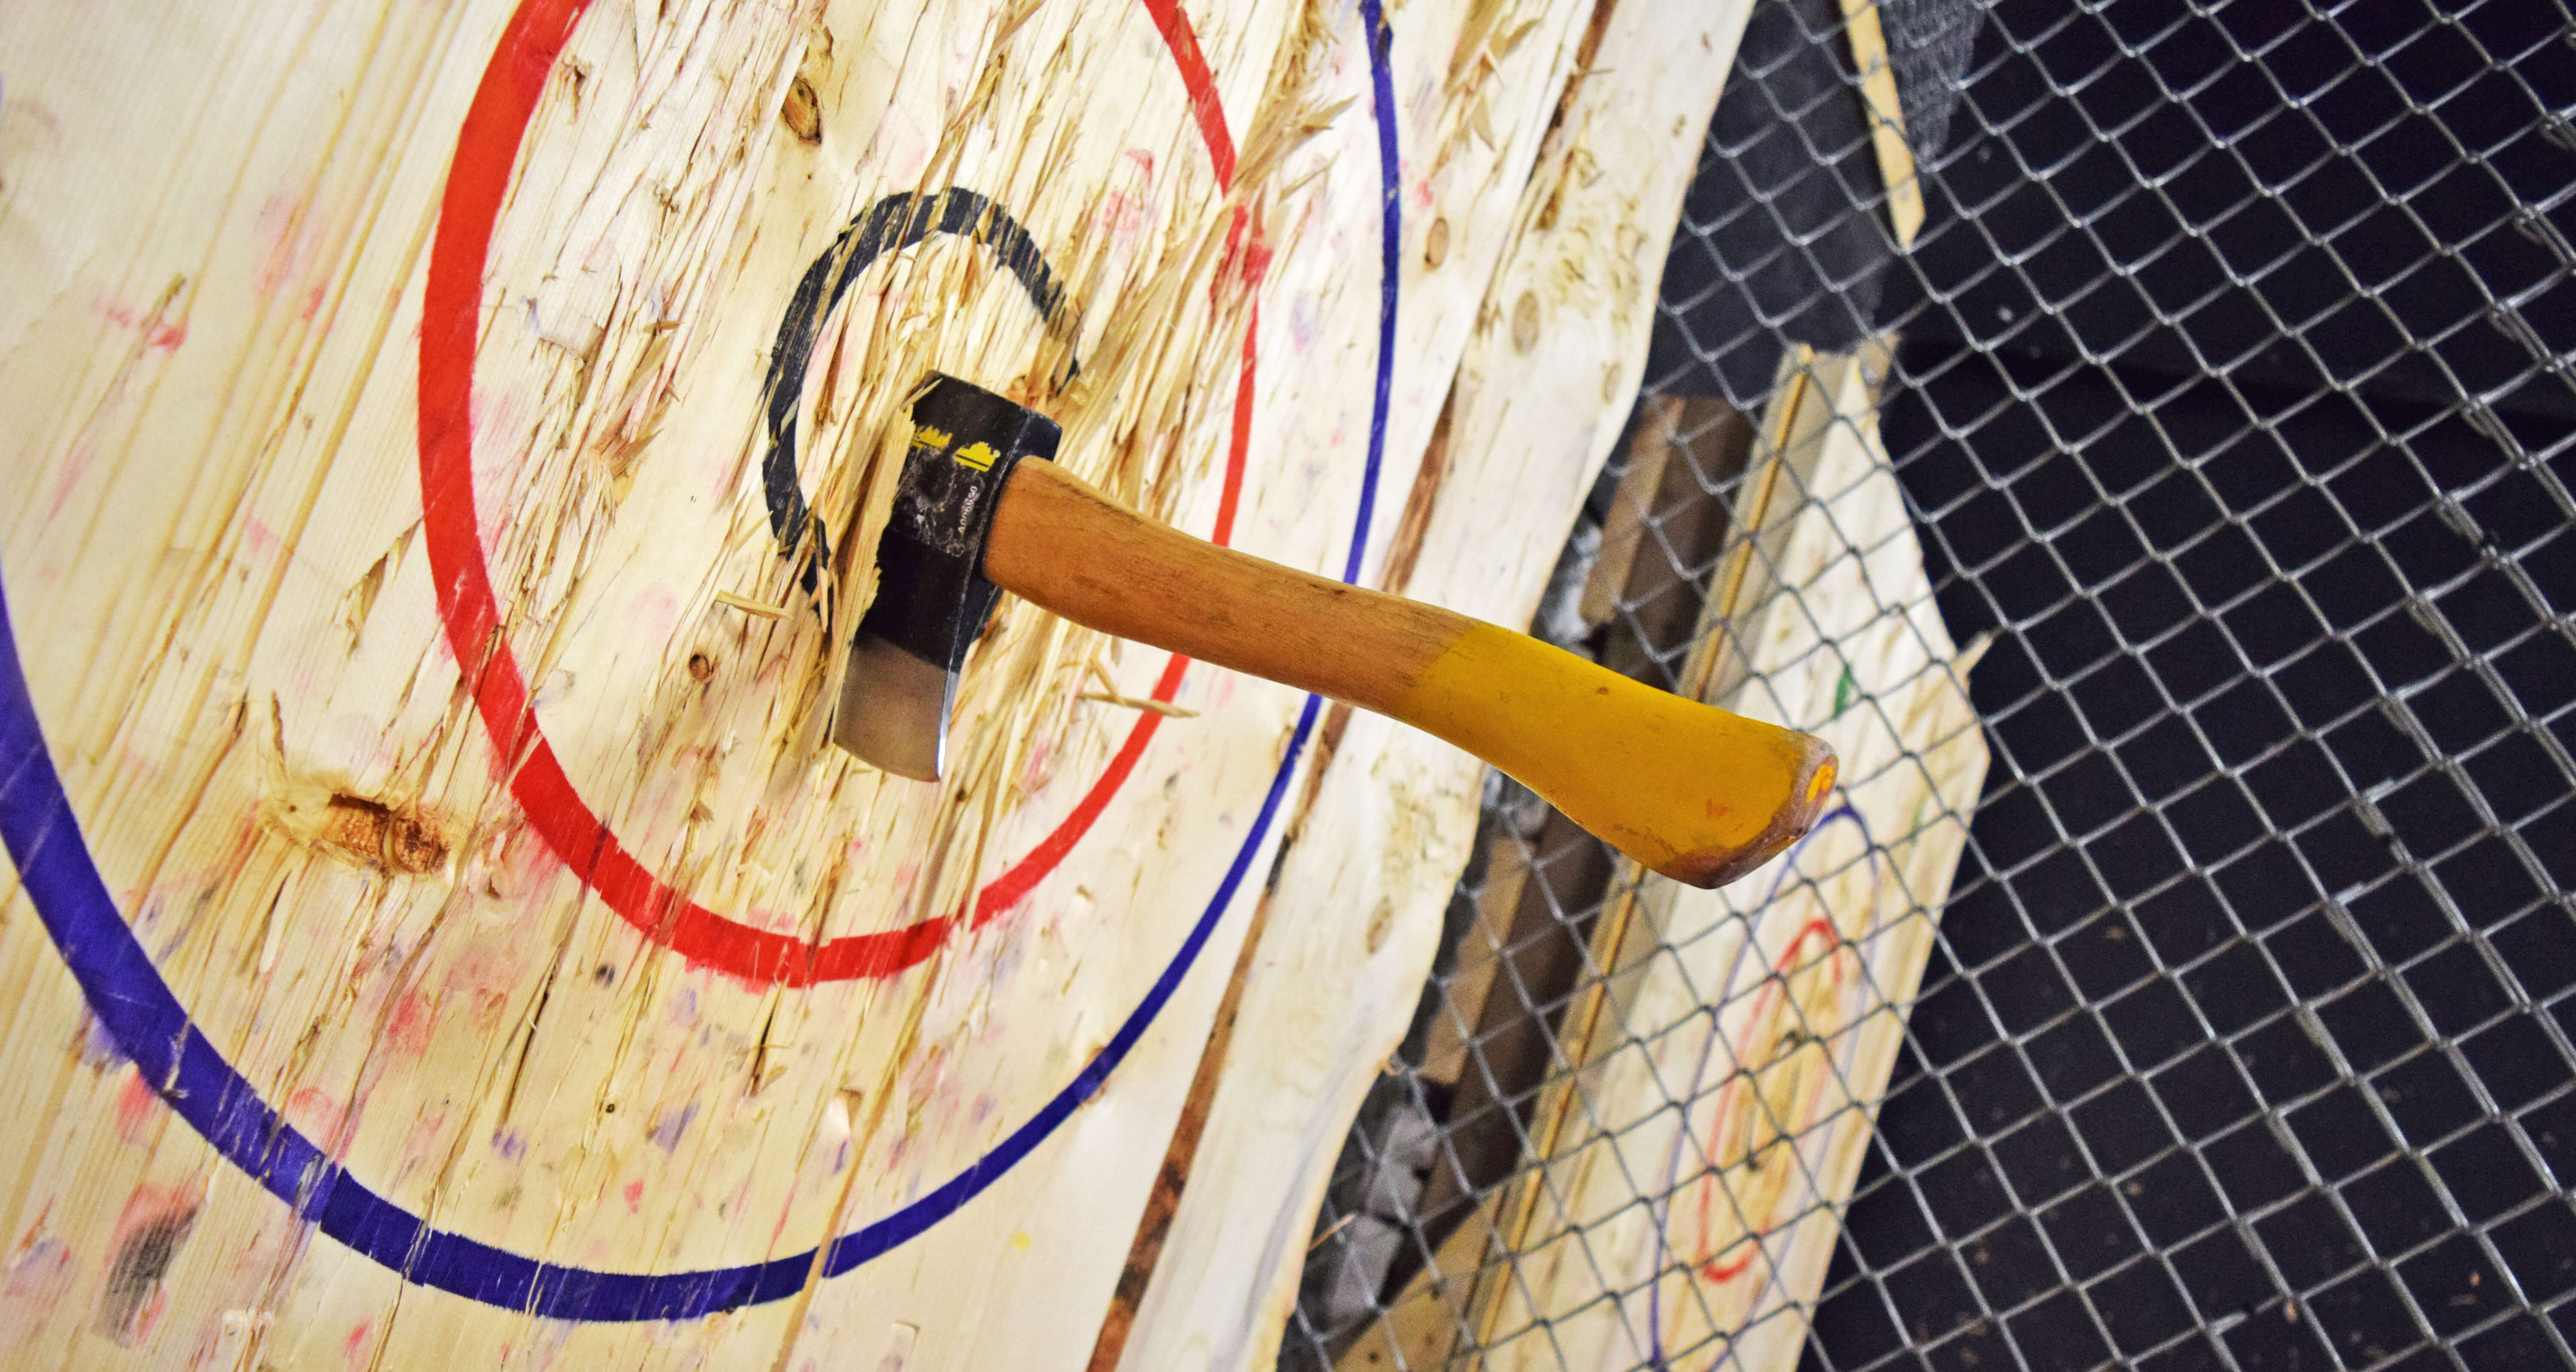 Benefits of Axe Throwing (for Beginners)